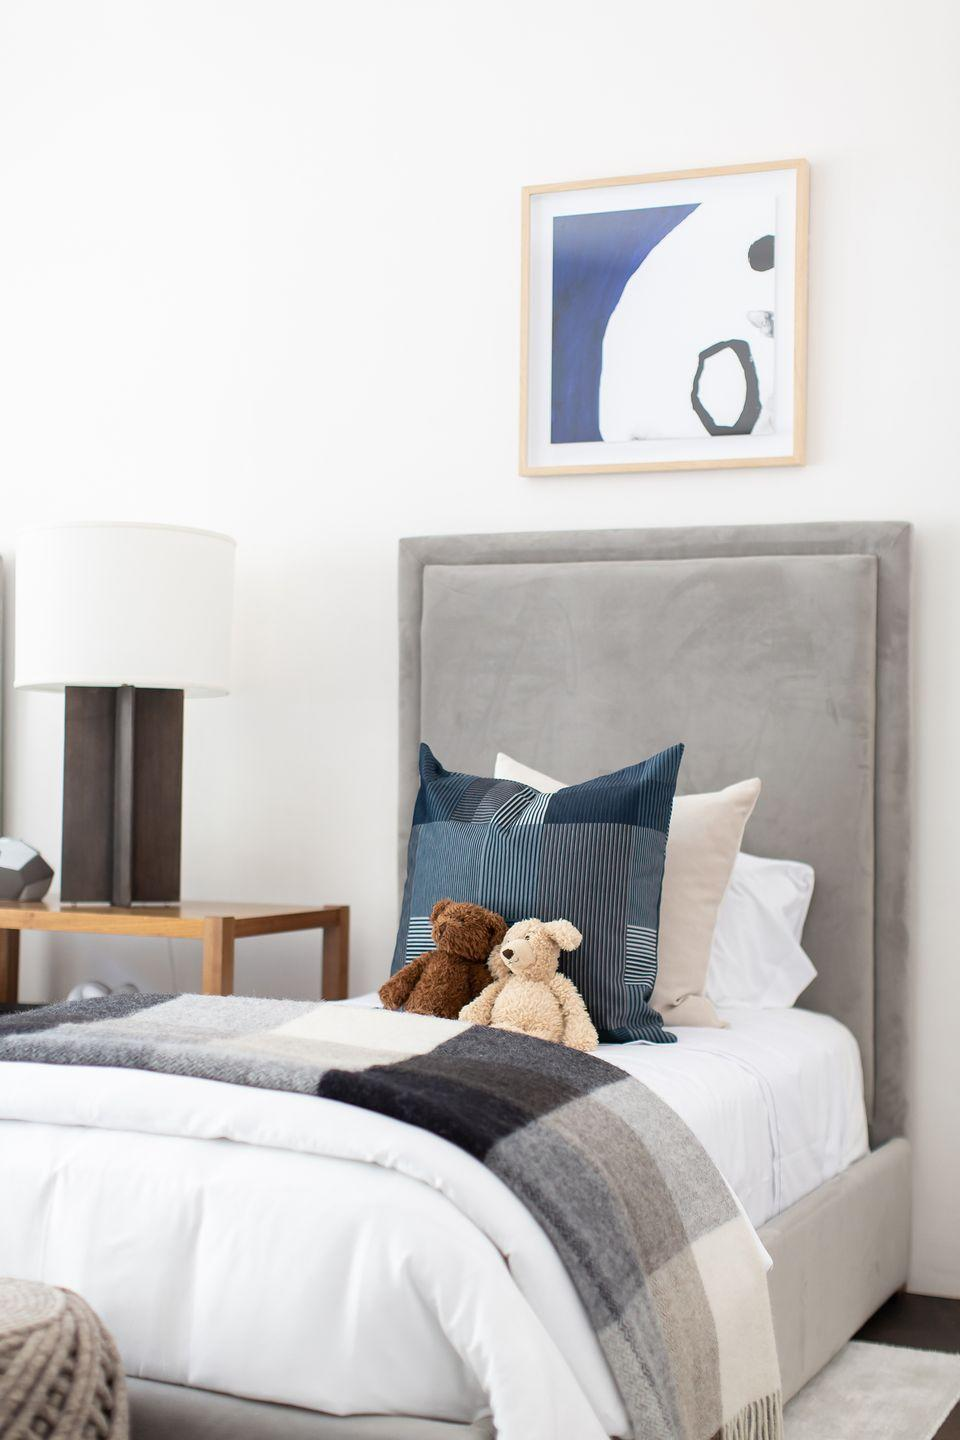 """<p>From the gray suede bed frame and industrial table lamp to the plaid throws and graphic framed print, decorator <a href=""""https://breeganjane.com/"""" rel=""""nofollow noopener"""" target=""""_blank"""" data-ylk=""""slk:Breegan Jane"""" class=""""link rapid-noclick-resp"""">Breegan Jane</a> chose understated and cozy staples for a versatile foundation that the child can build off of for years to come. </p>"""